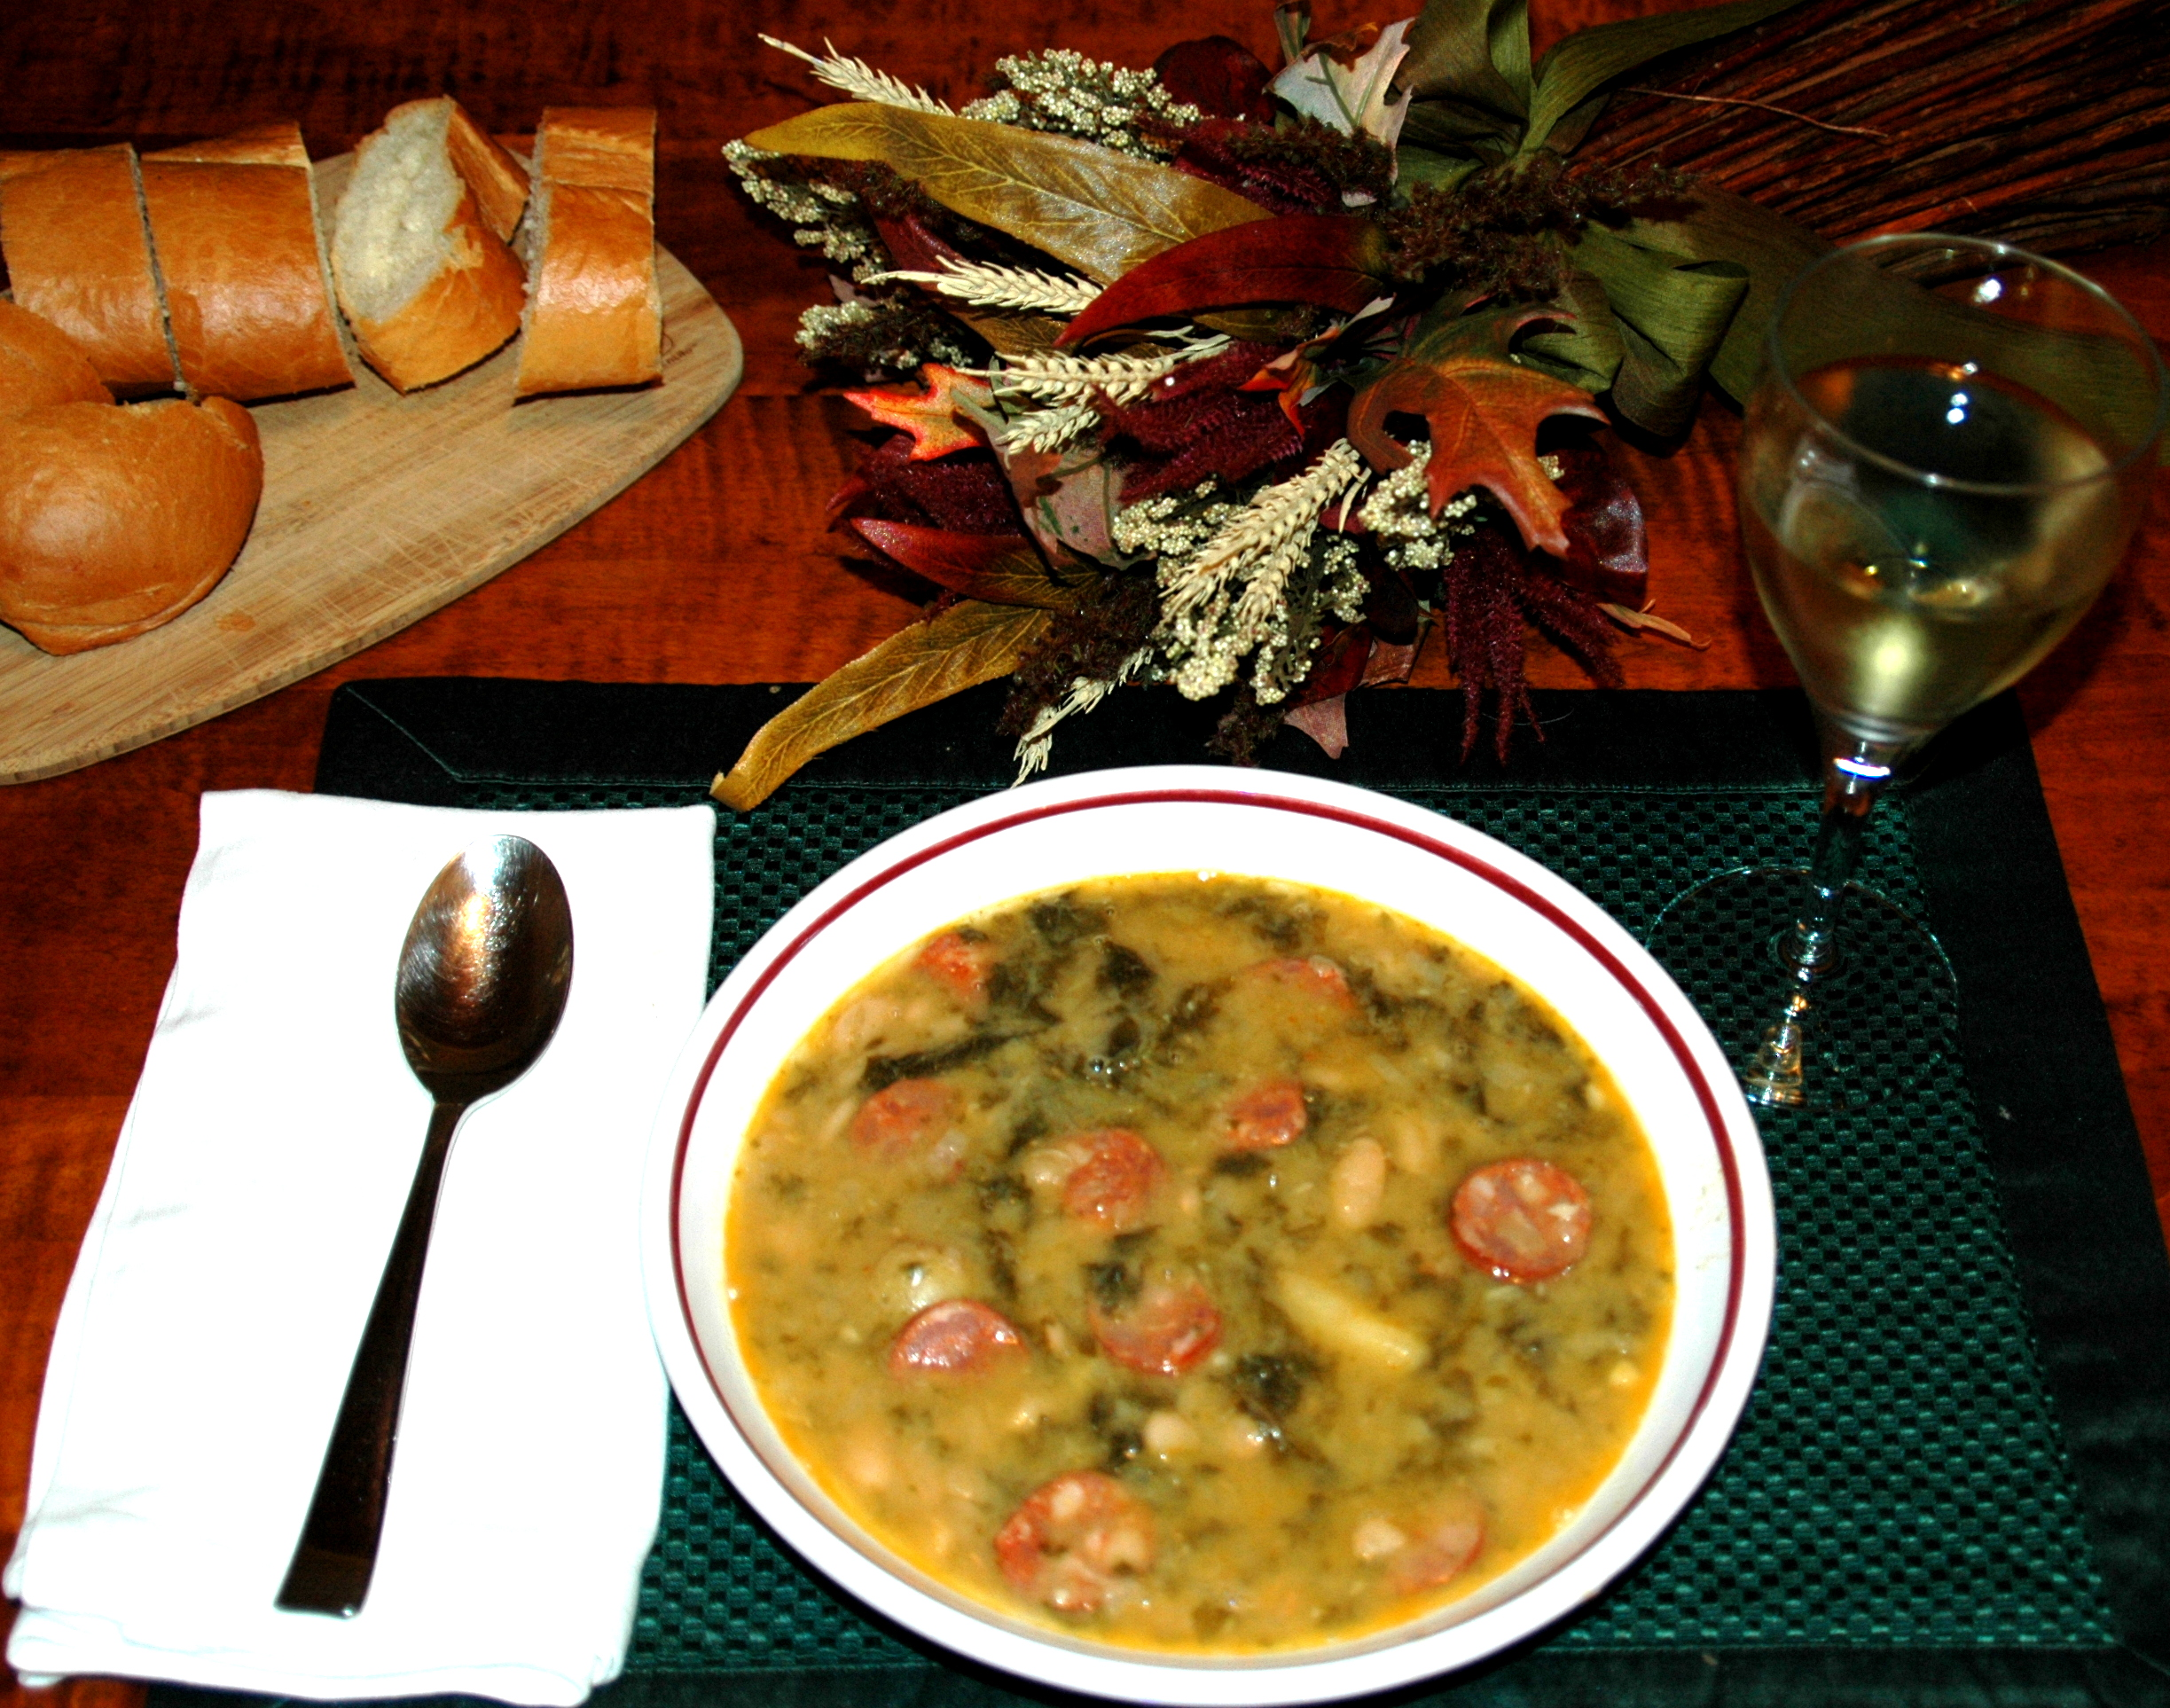 Portuguese Kale Soup | The Literate Chef